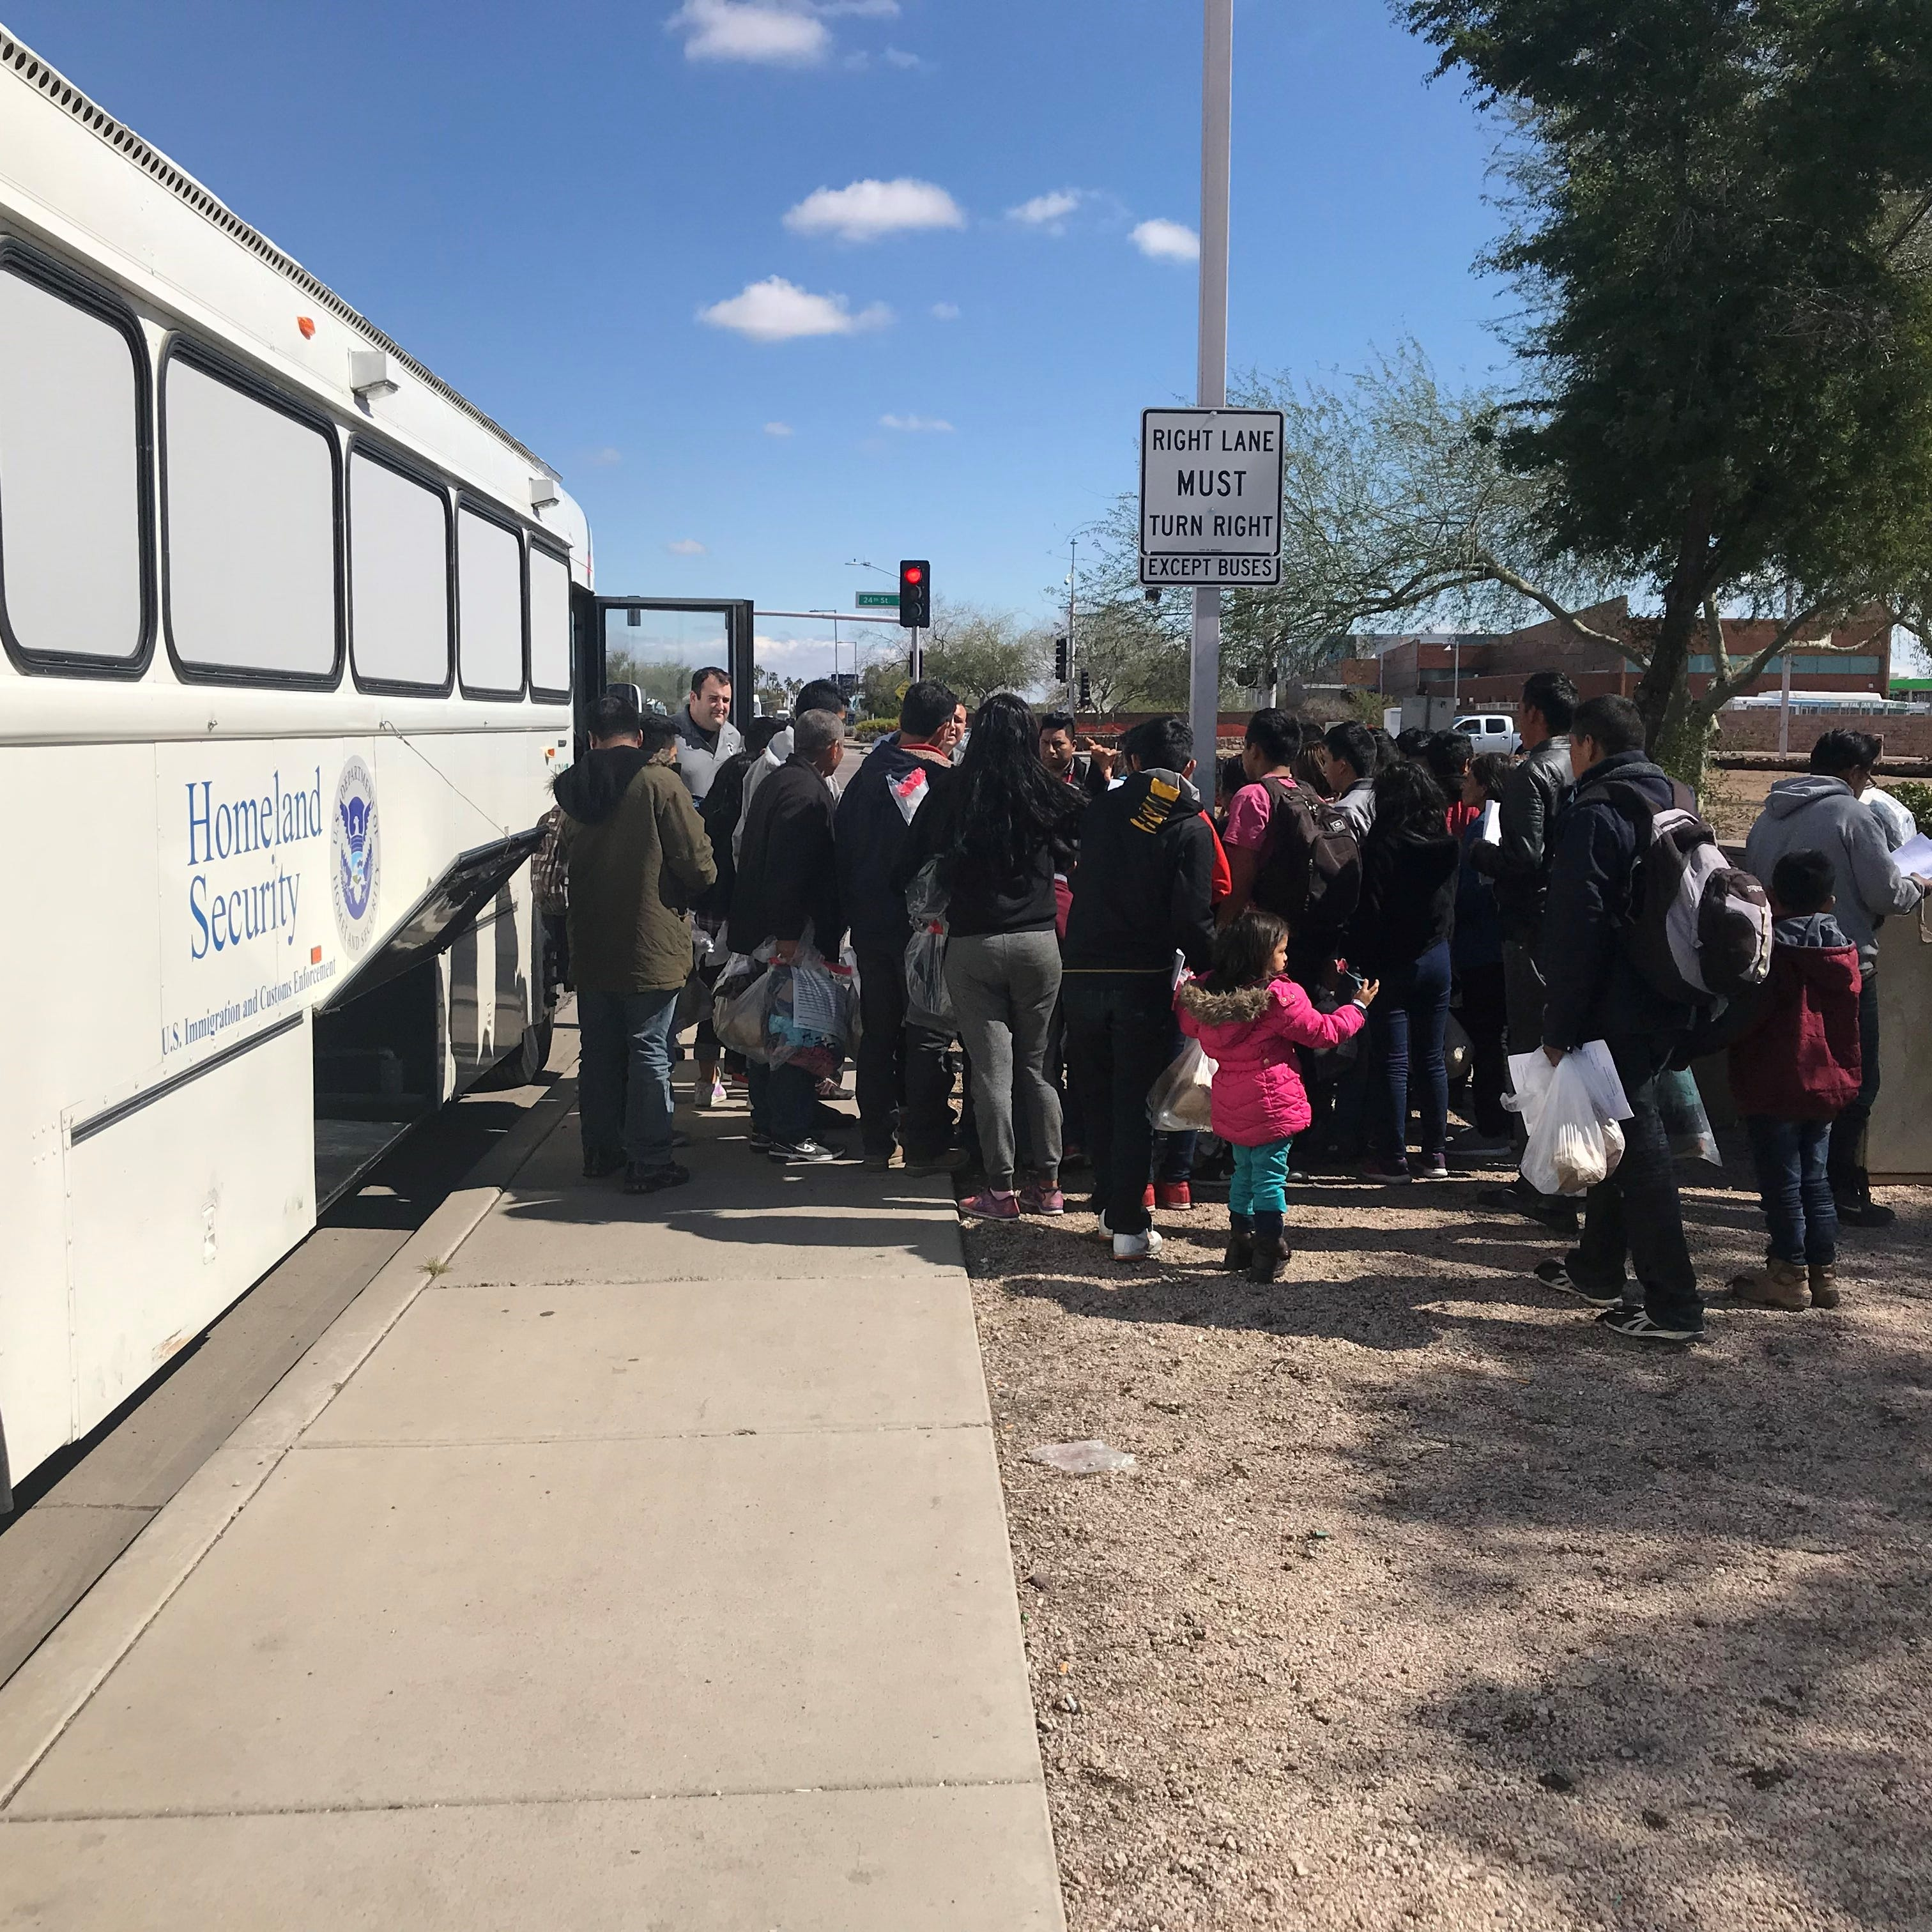 Federal officials drop off migrant families at Greyhound station in Phoenix